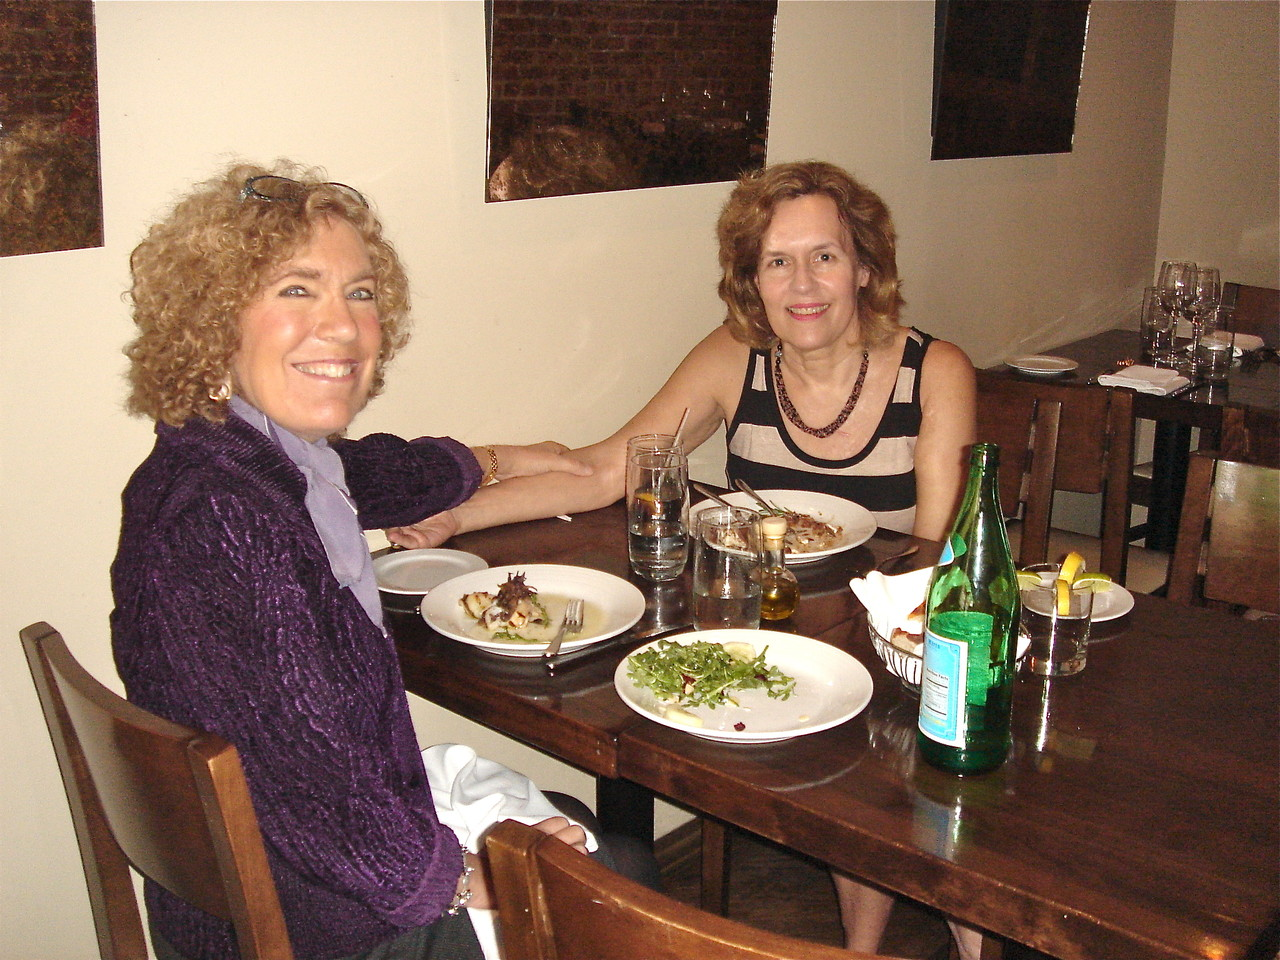 Elaine Fuchs and Lorraine Gudas  7-2013  summer lunch! classmates at Princeton